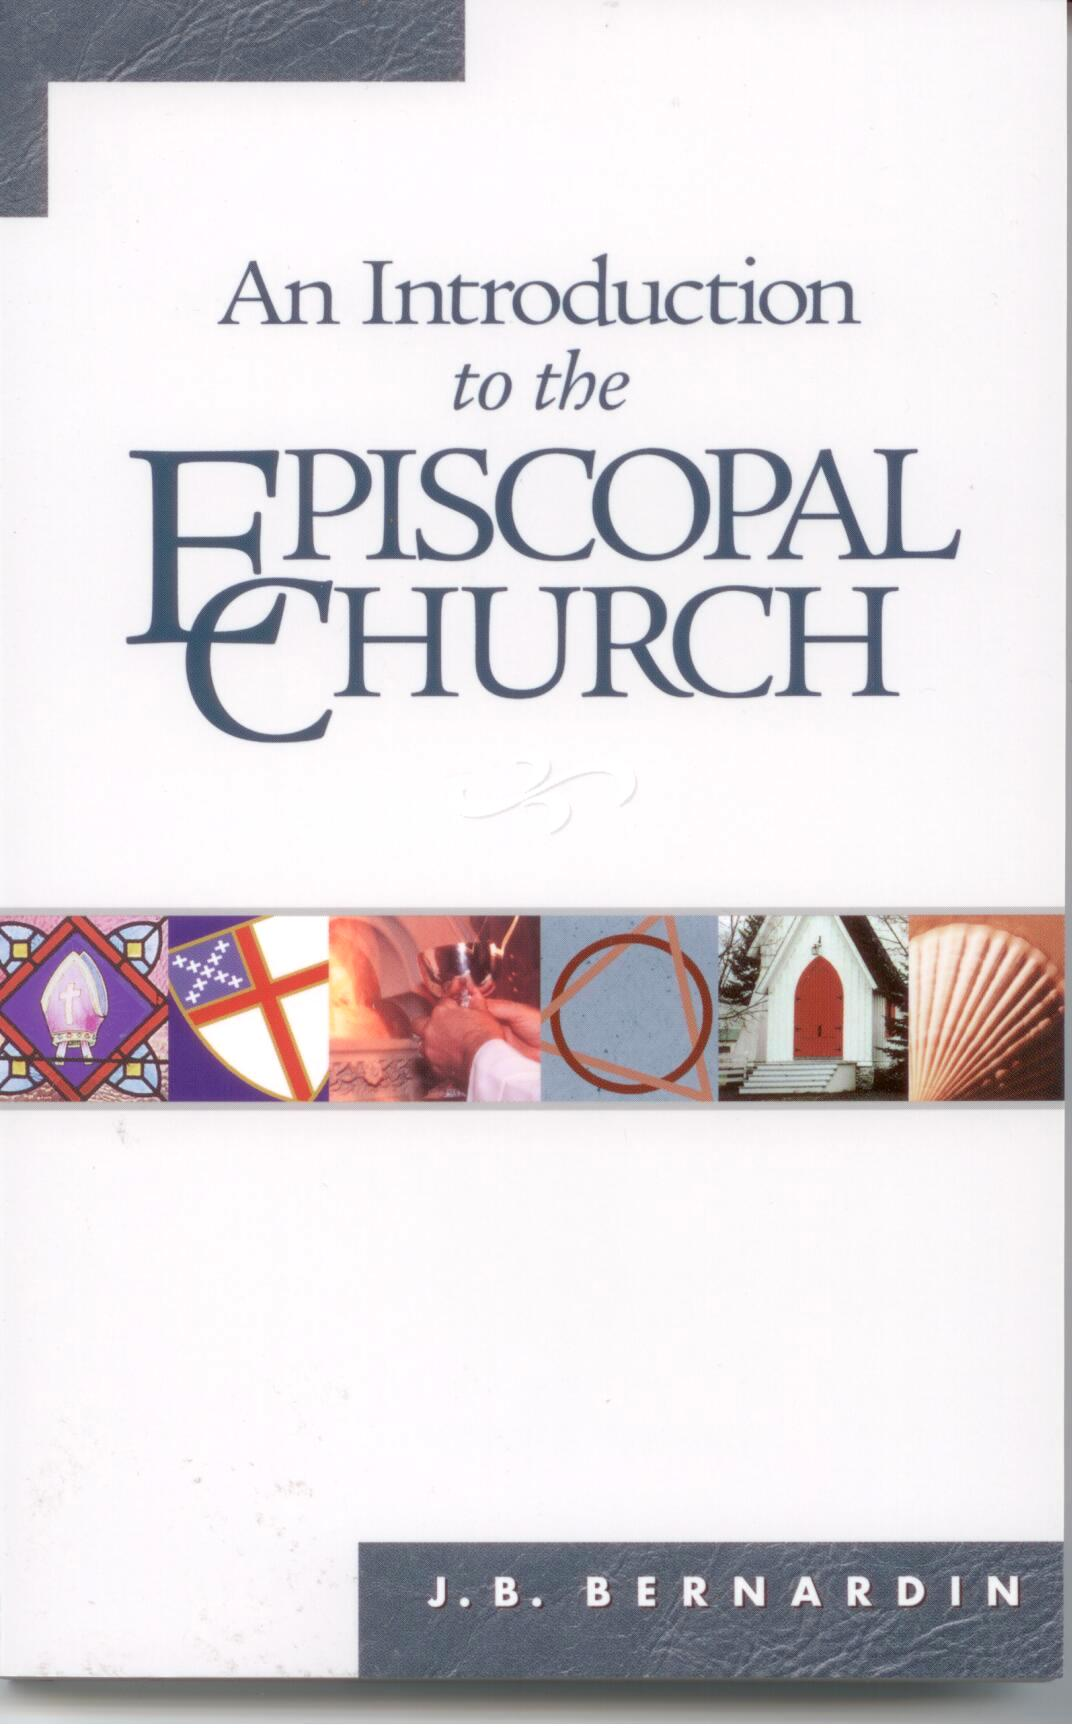 An Introduction to the Episcopal Church by J.B. Bernardin 108-9780819212313